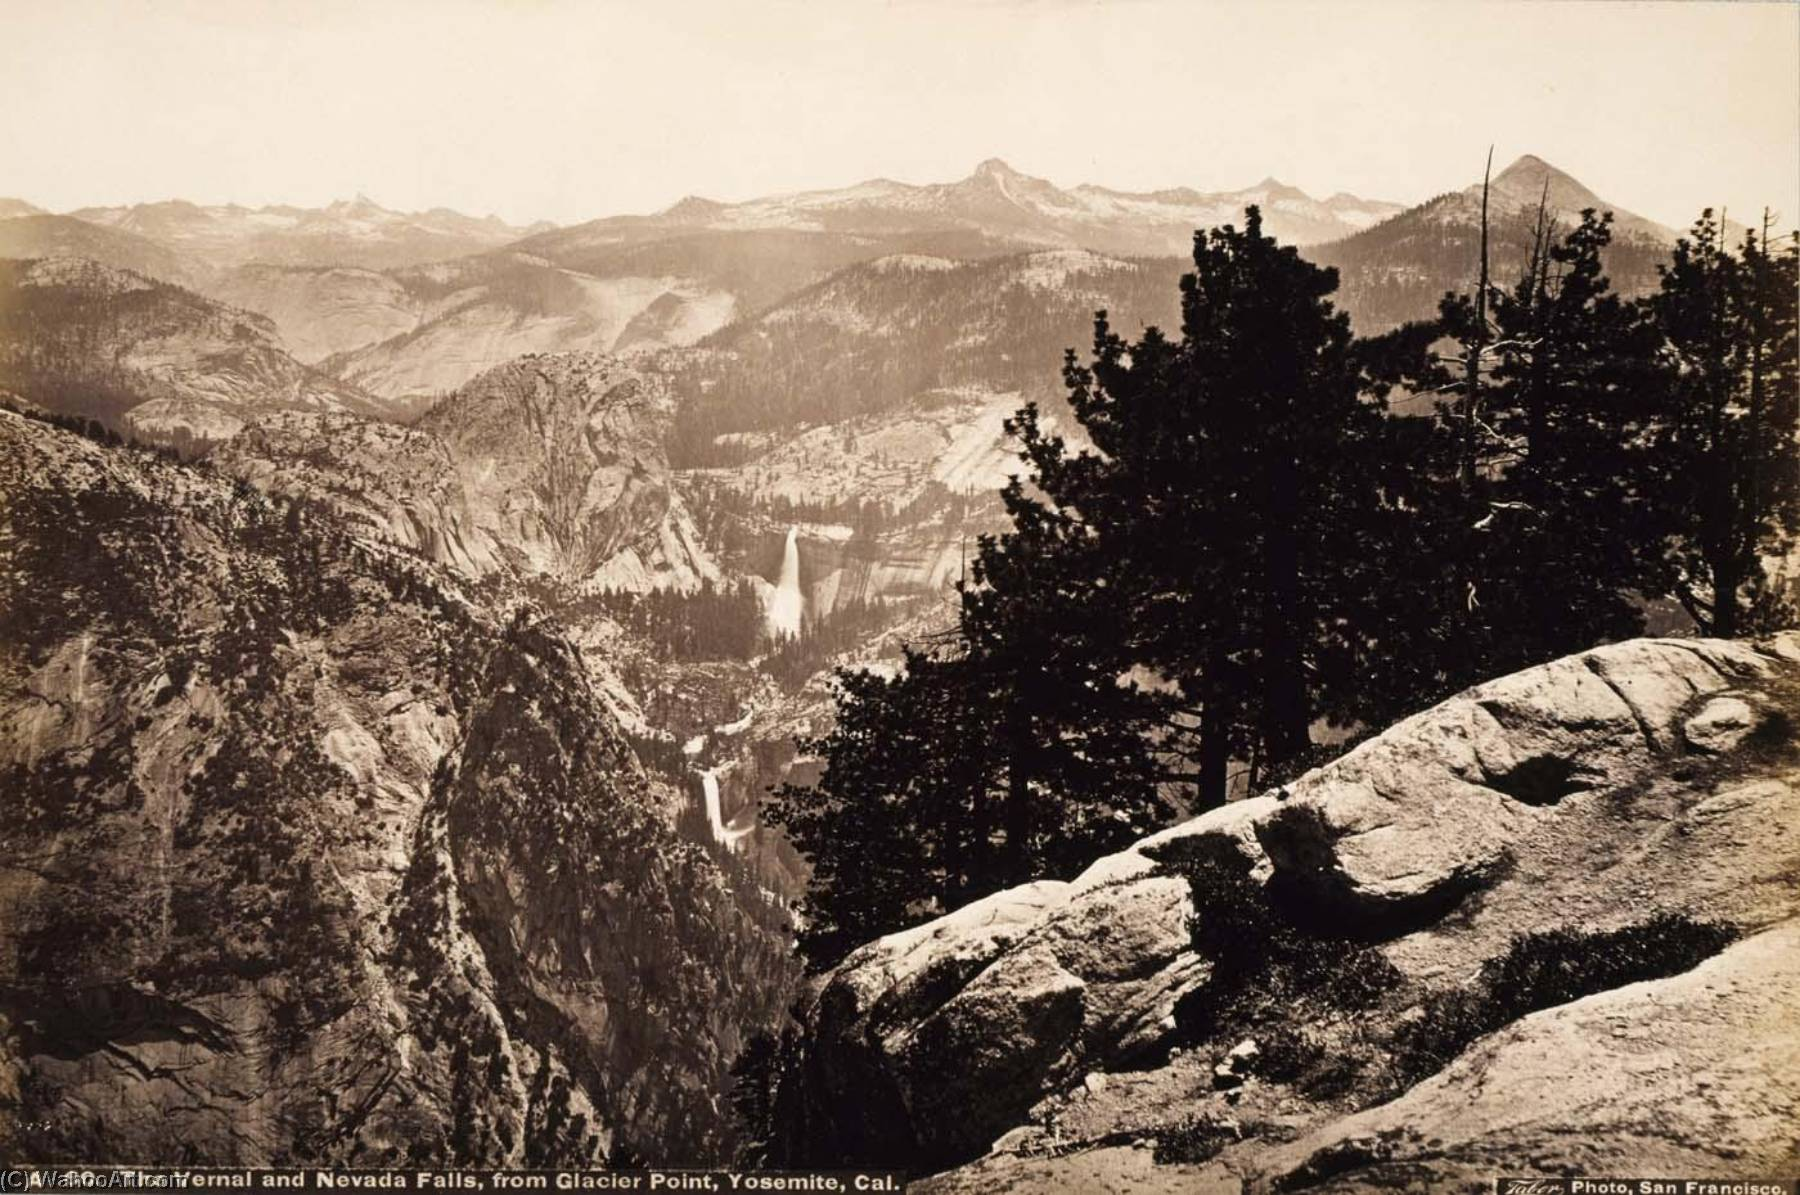 Order Painting Copy : The Vernal and Nevada Falls, from Glacier Point, Yosemite, 1875 by Carleton Emmons Watkins (1829-1916, United States) | ArtsDot.com